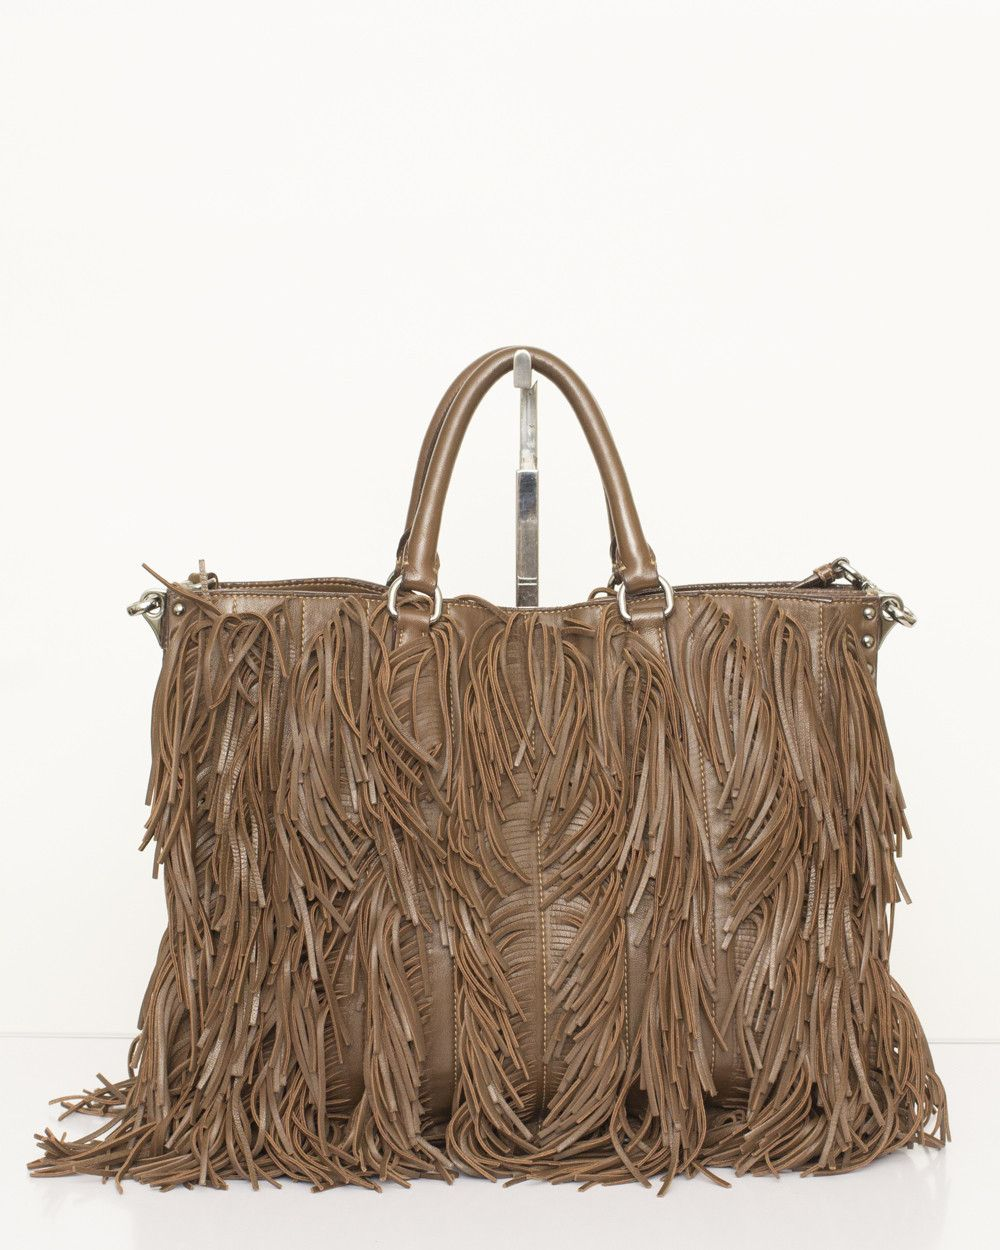 0e617c5715b8 Prada Brown Nappa Fringe Tote Bag | Handbags I love | Bags, Prada ...